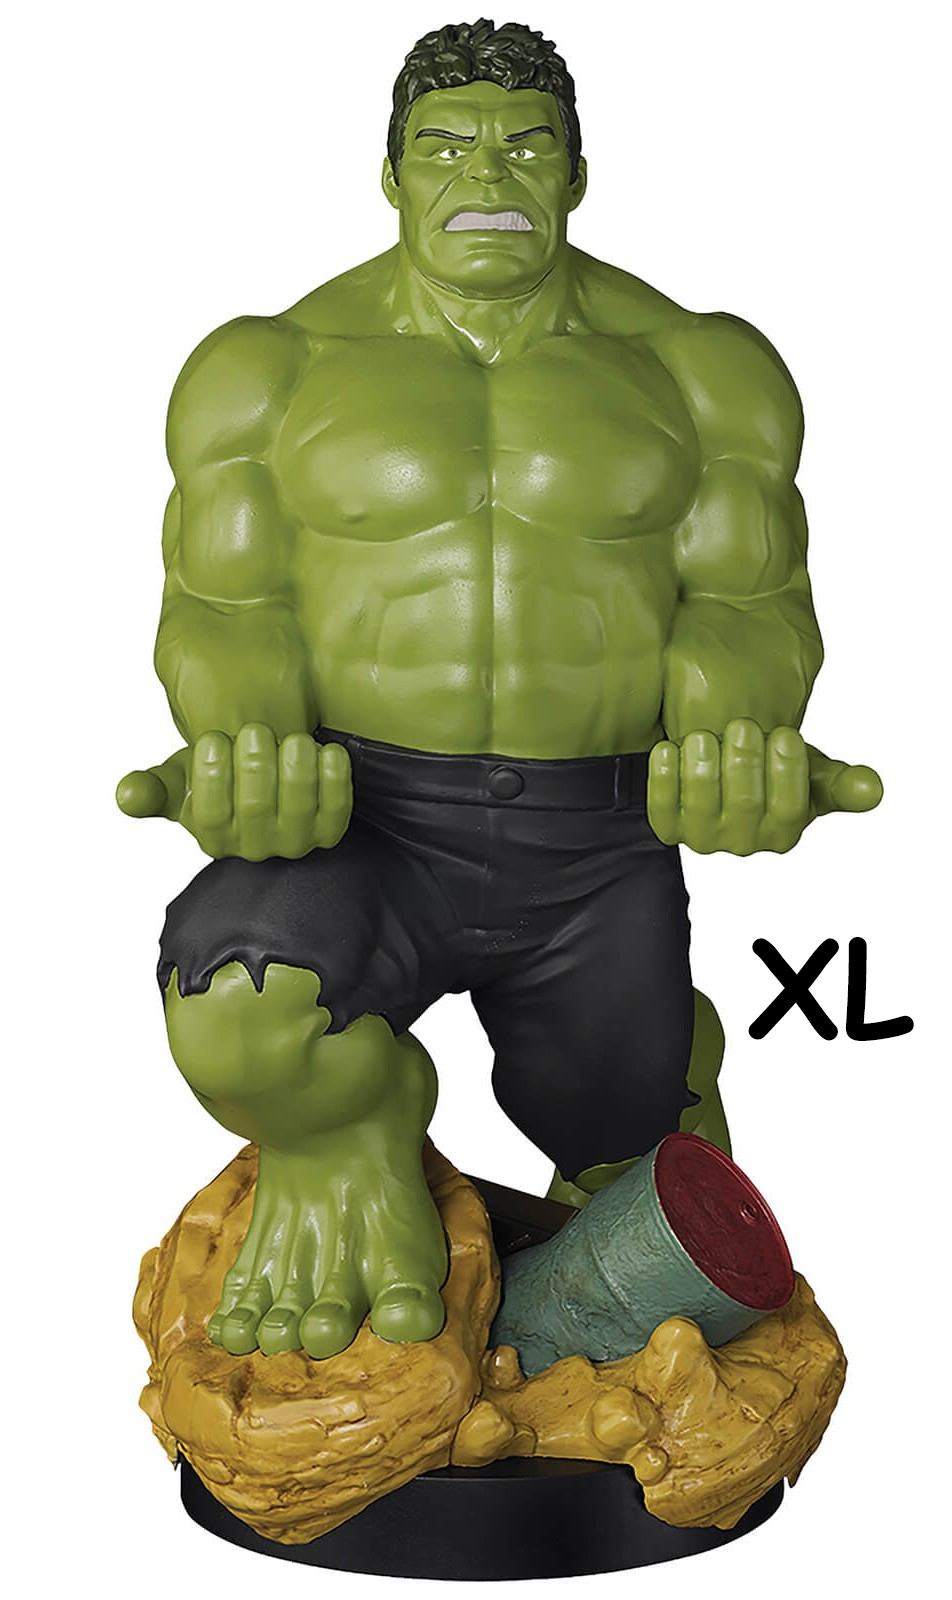 MARVEL HULK Cable Guy XL stovas